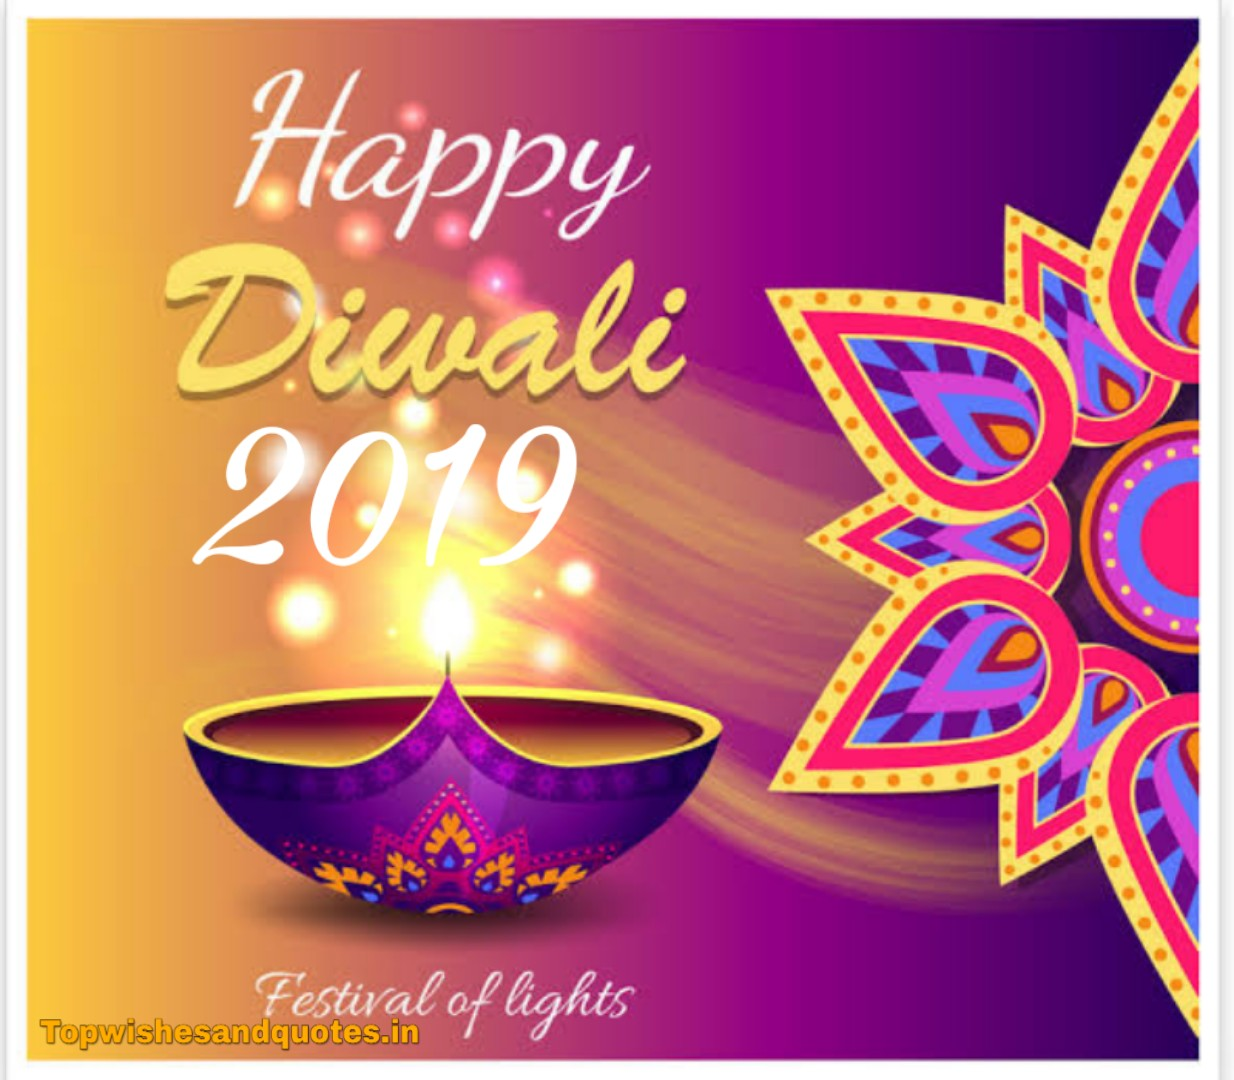 Happy Diwali 2019 Wishes For friend, Girlfriend and Family